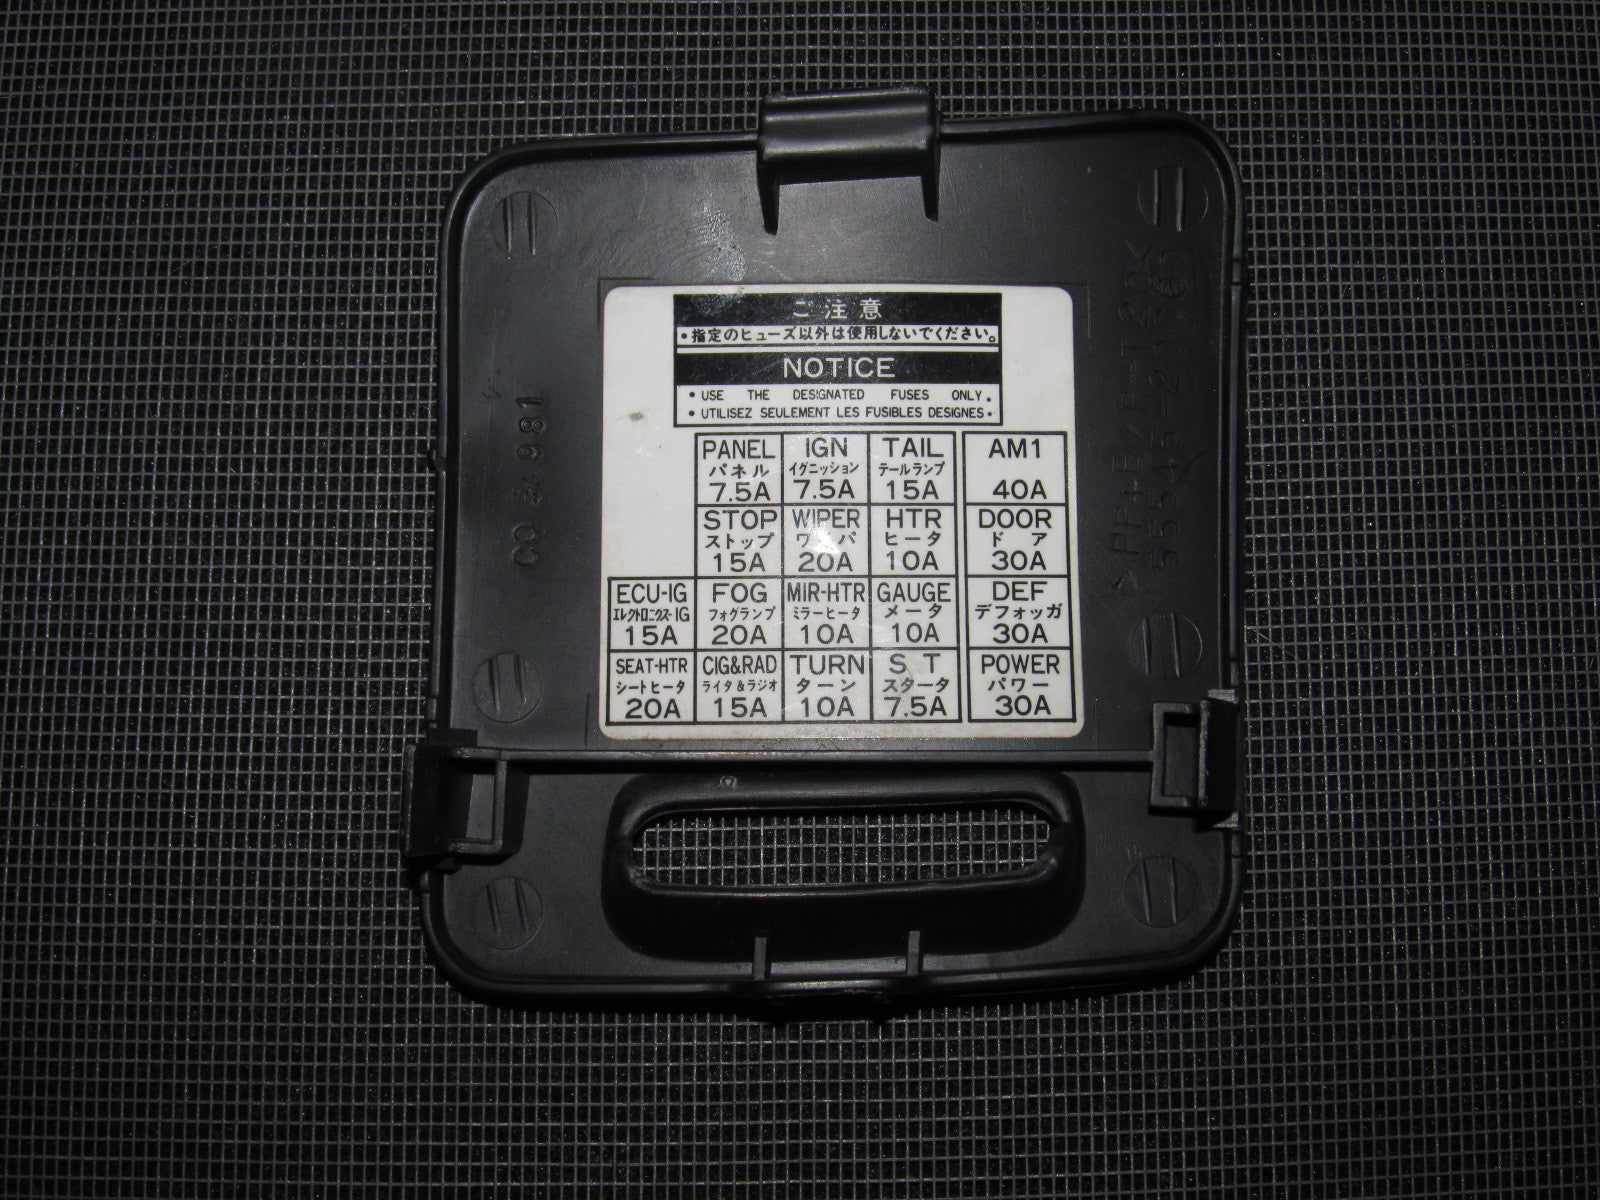 IMG_6144?v=1423105523 94 95 96 97 98 99 toyota celica oem interior fuse box cover toyota celica fuse box layout at gsmx.co